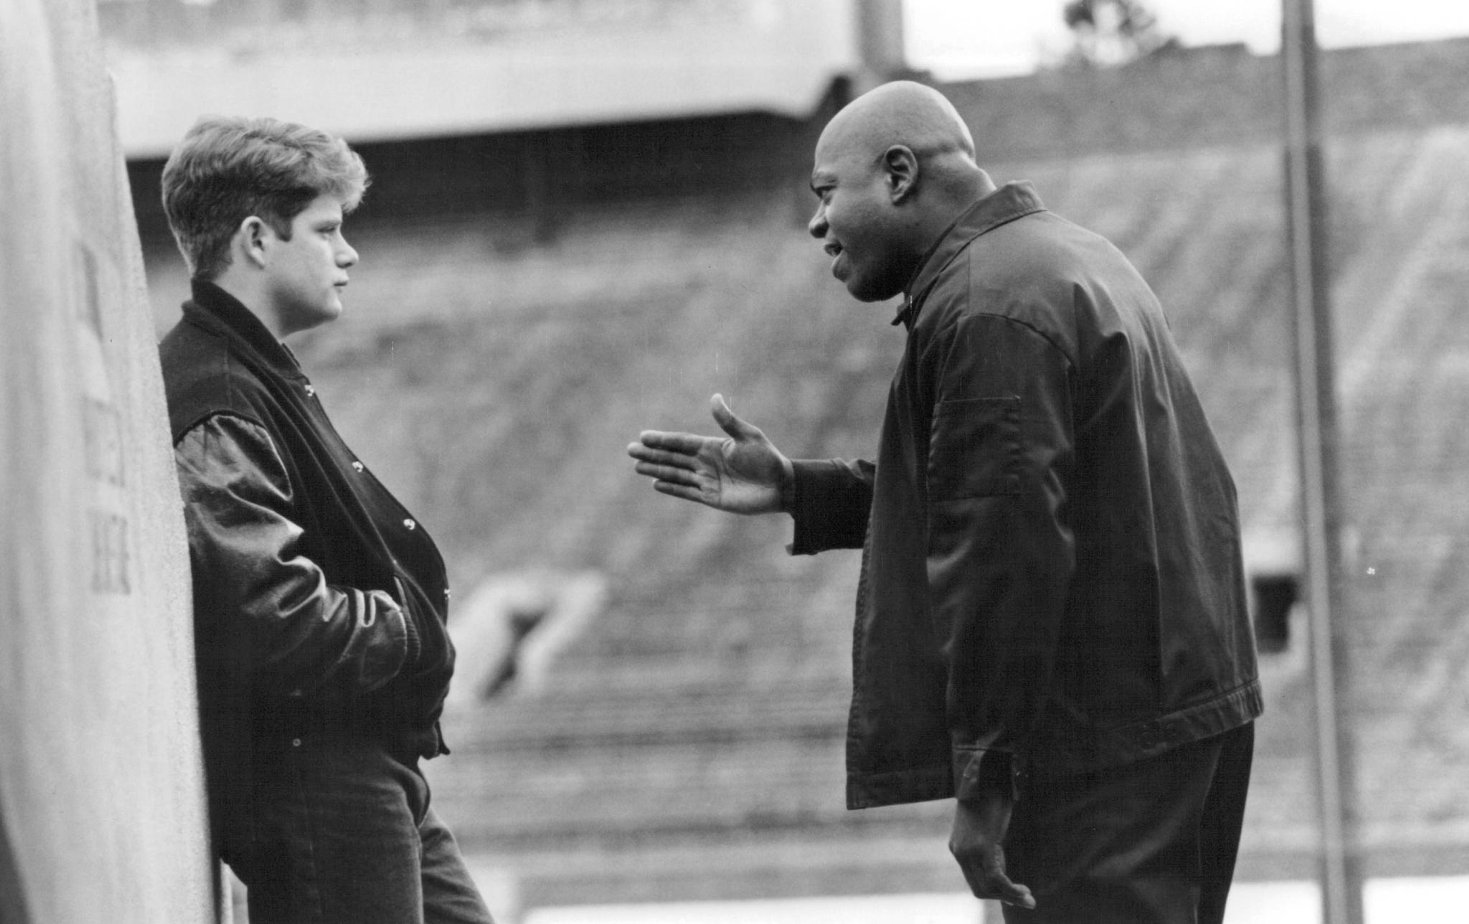 the movie rudy essay At the beginning of the movie, rudy's family holds him to a very meager image, a negative pygmalion, laughing at his childhood determination to play football for notre dame.